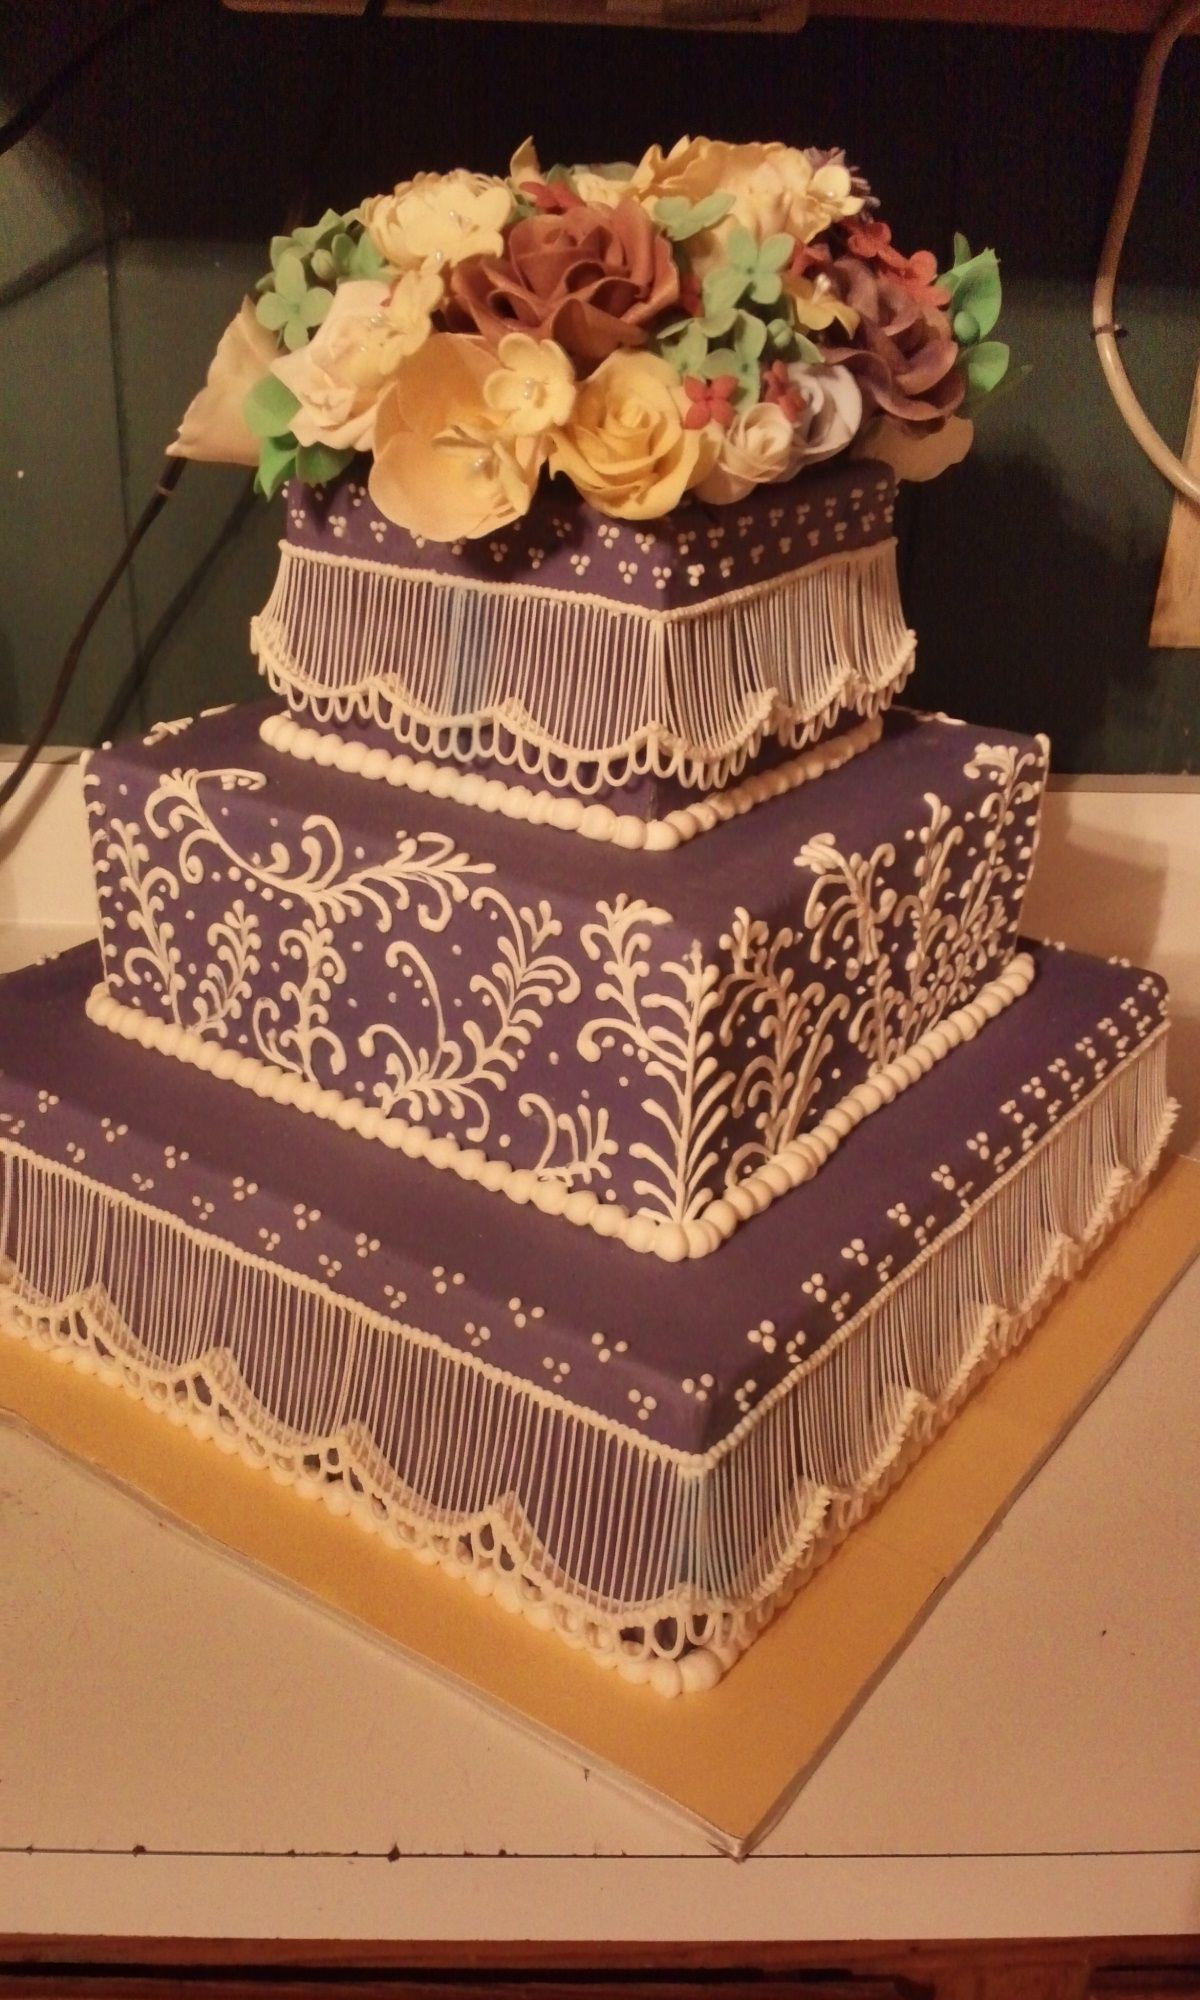 Square wedding cakes covered in a purple fondant with royal icing